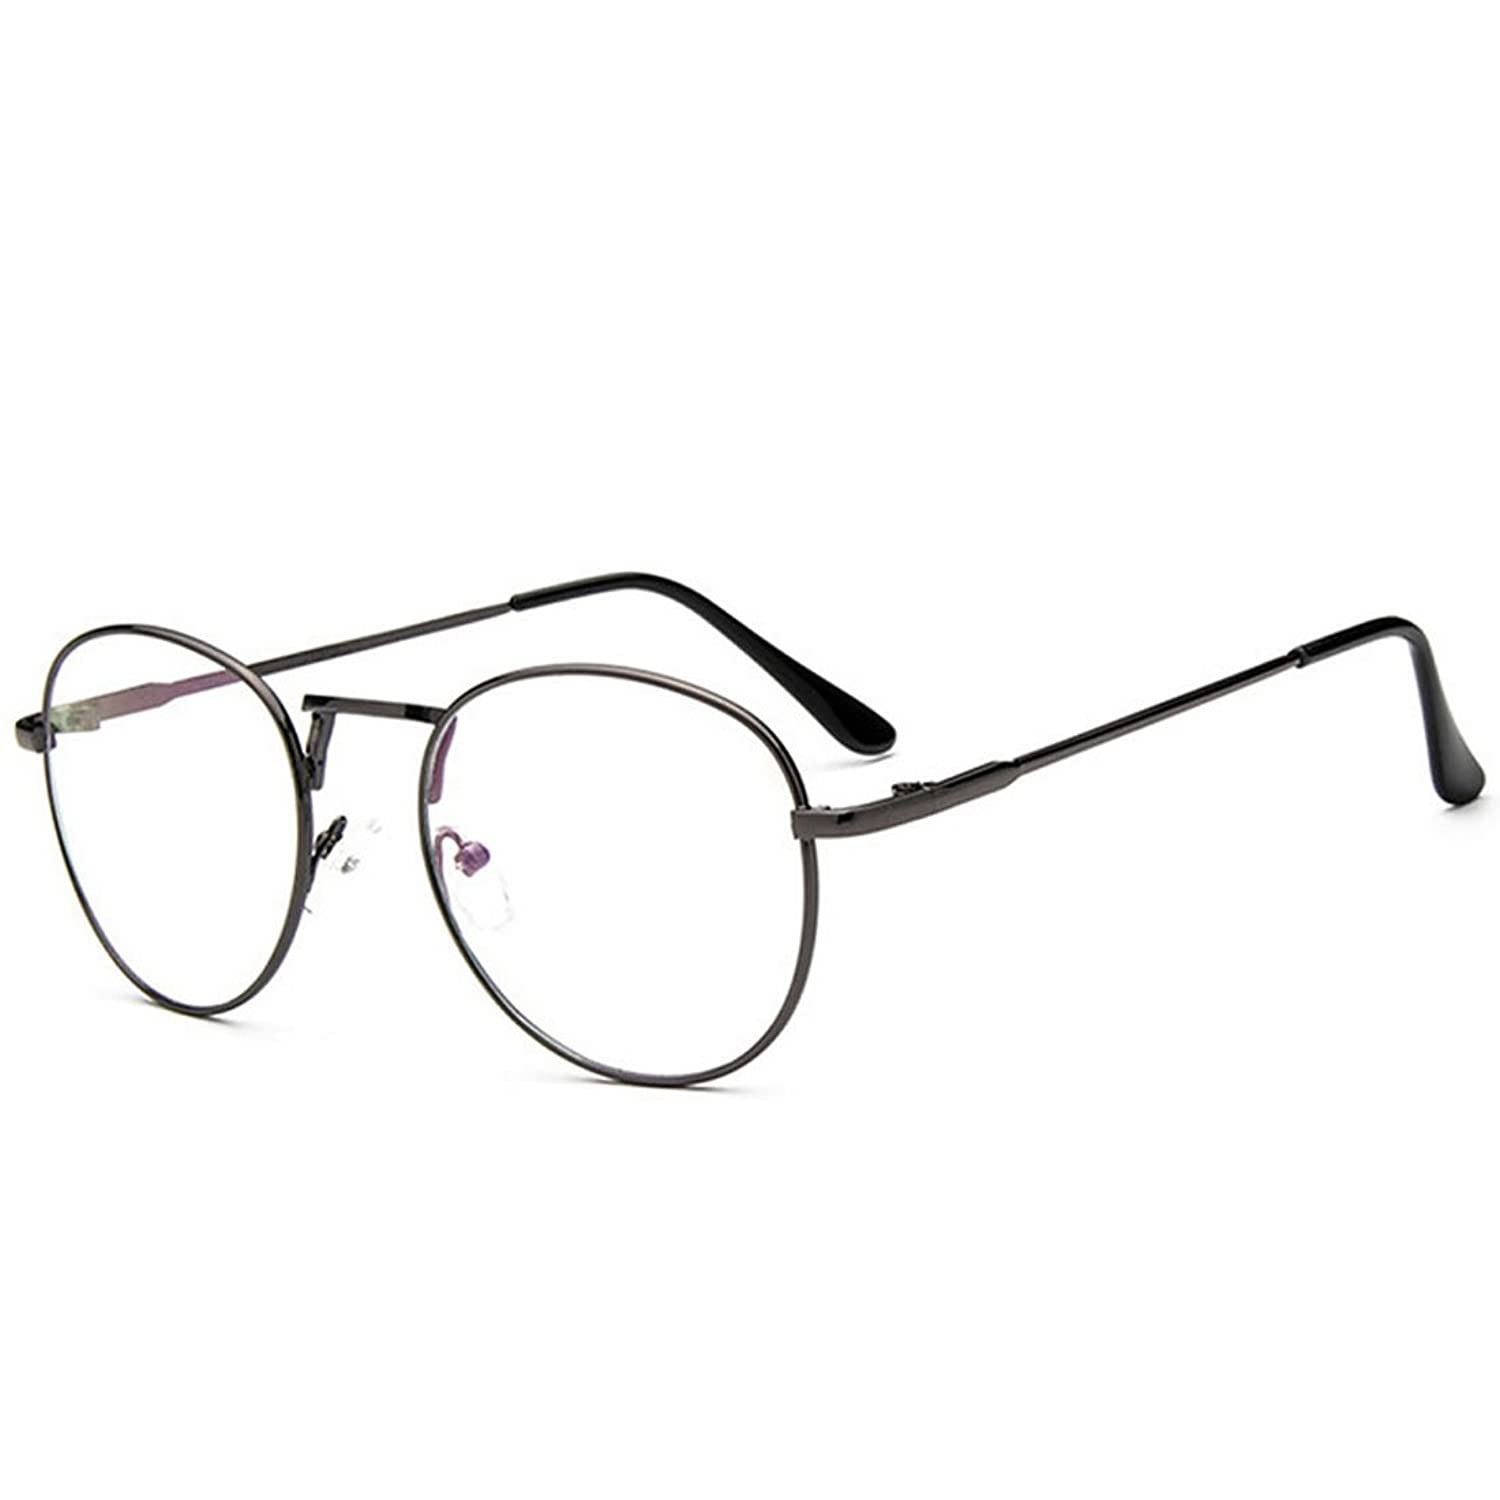 D.King Clear Lens Eyeglasses Metal Frame Retro Vintage Fashion ...